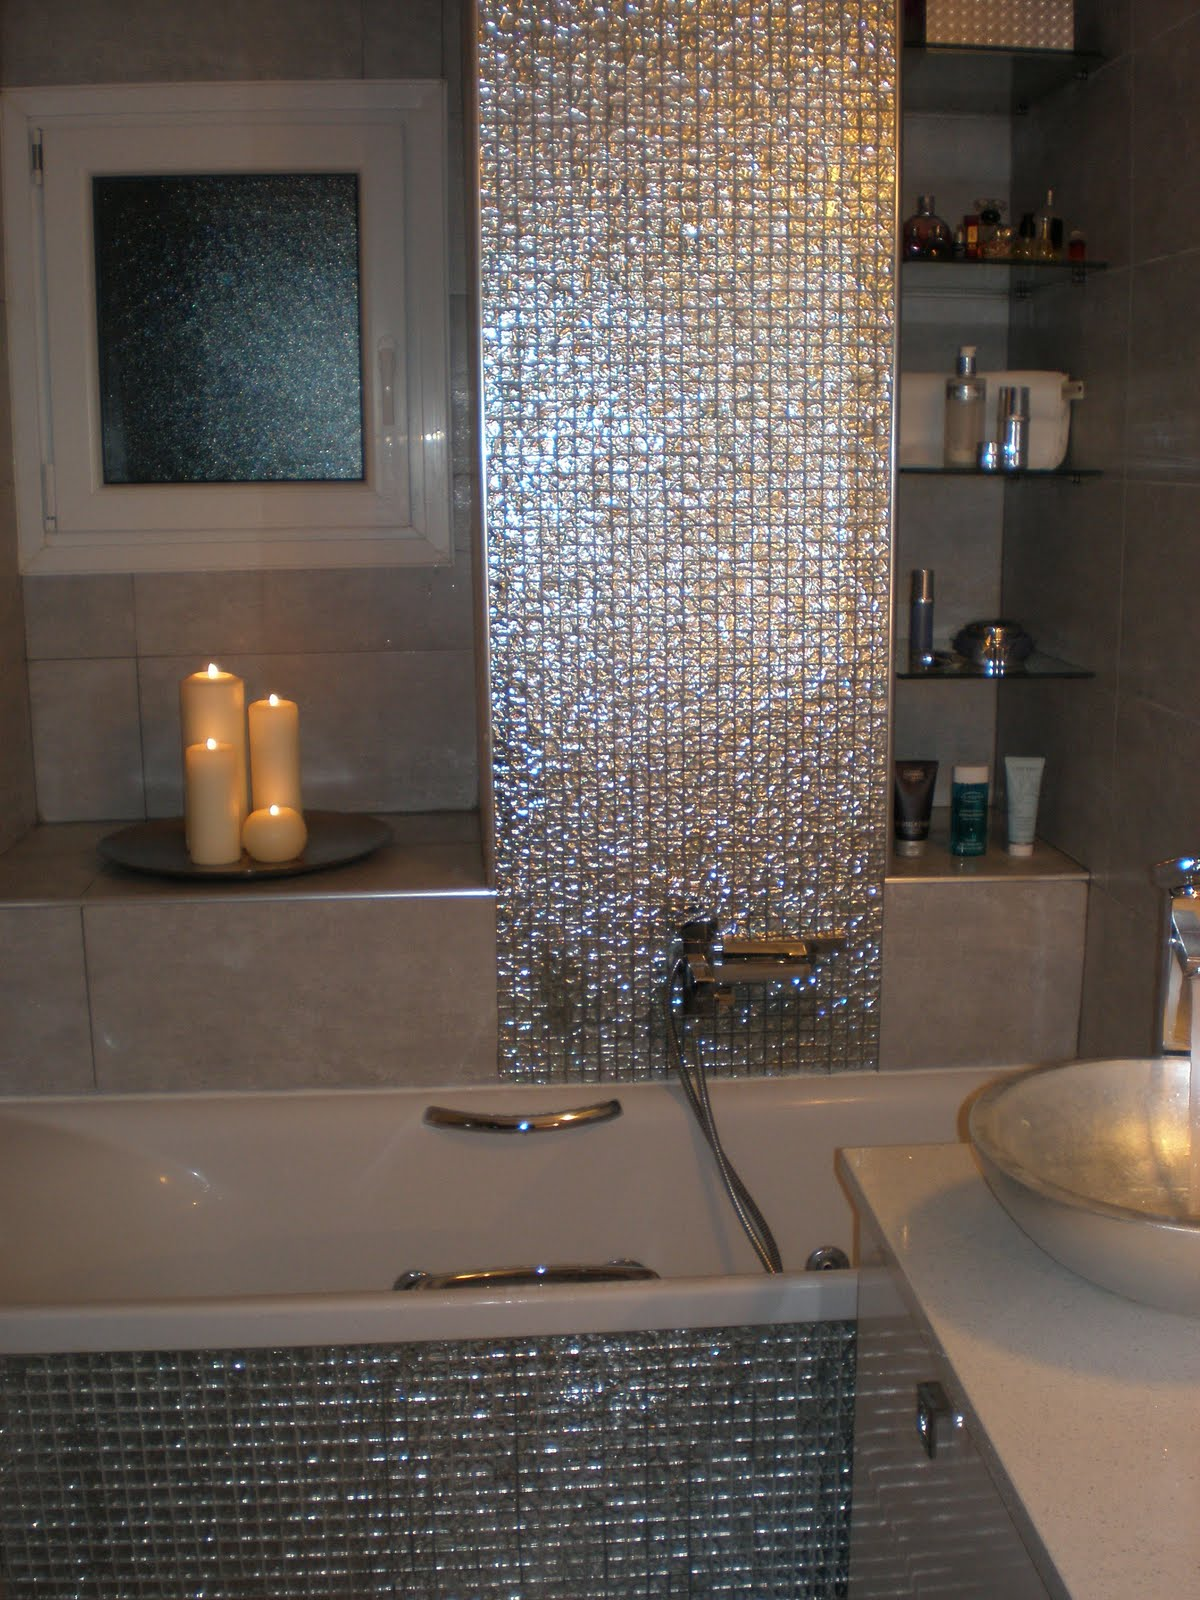 Mosaic Bathroom Designs Interior Amusing Mosaic Bathrooms  Decoholic Inspiration Design